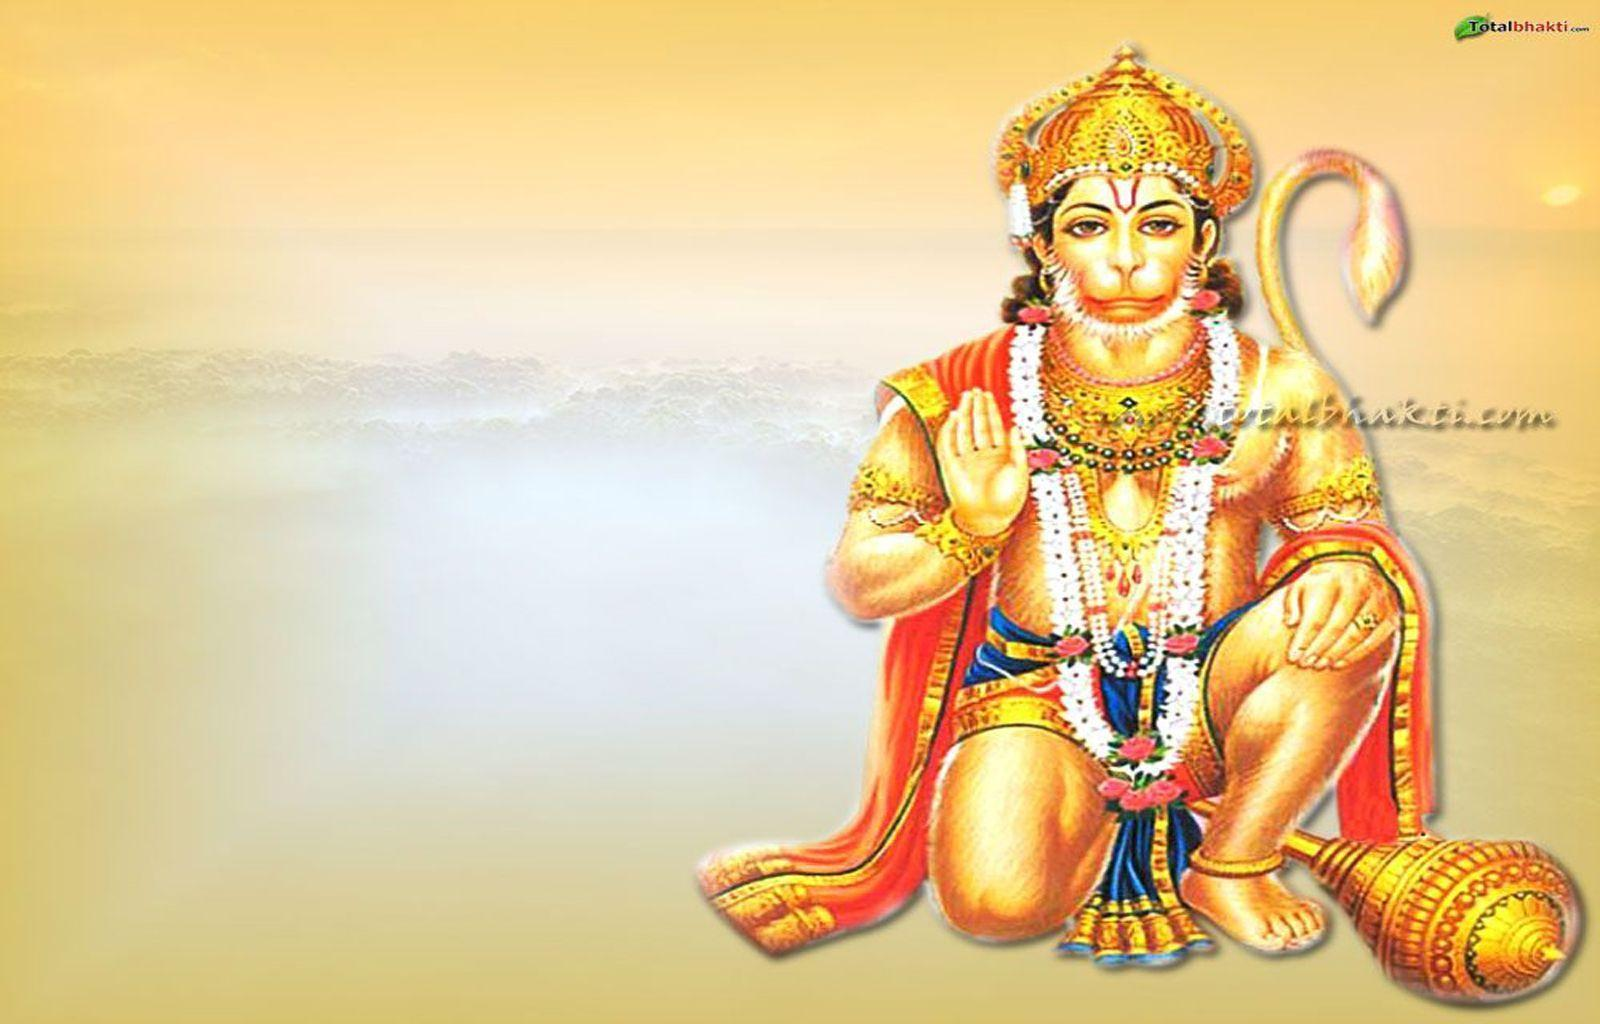 hanuman wallpaper, Hindu wallpaper, Lord Hanuman blessing, orange